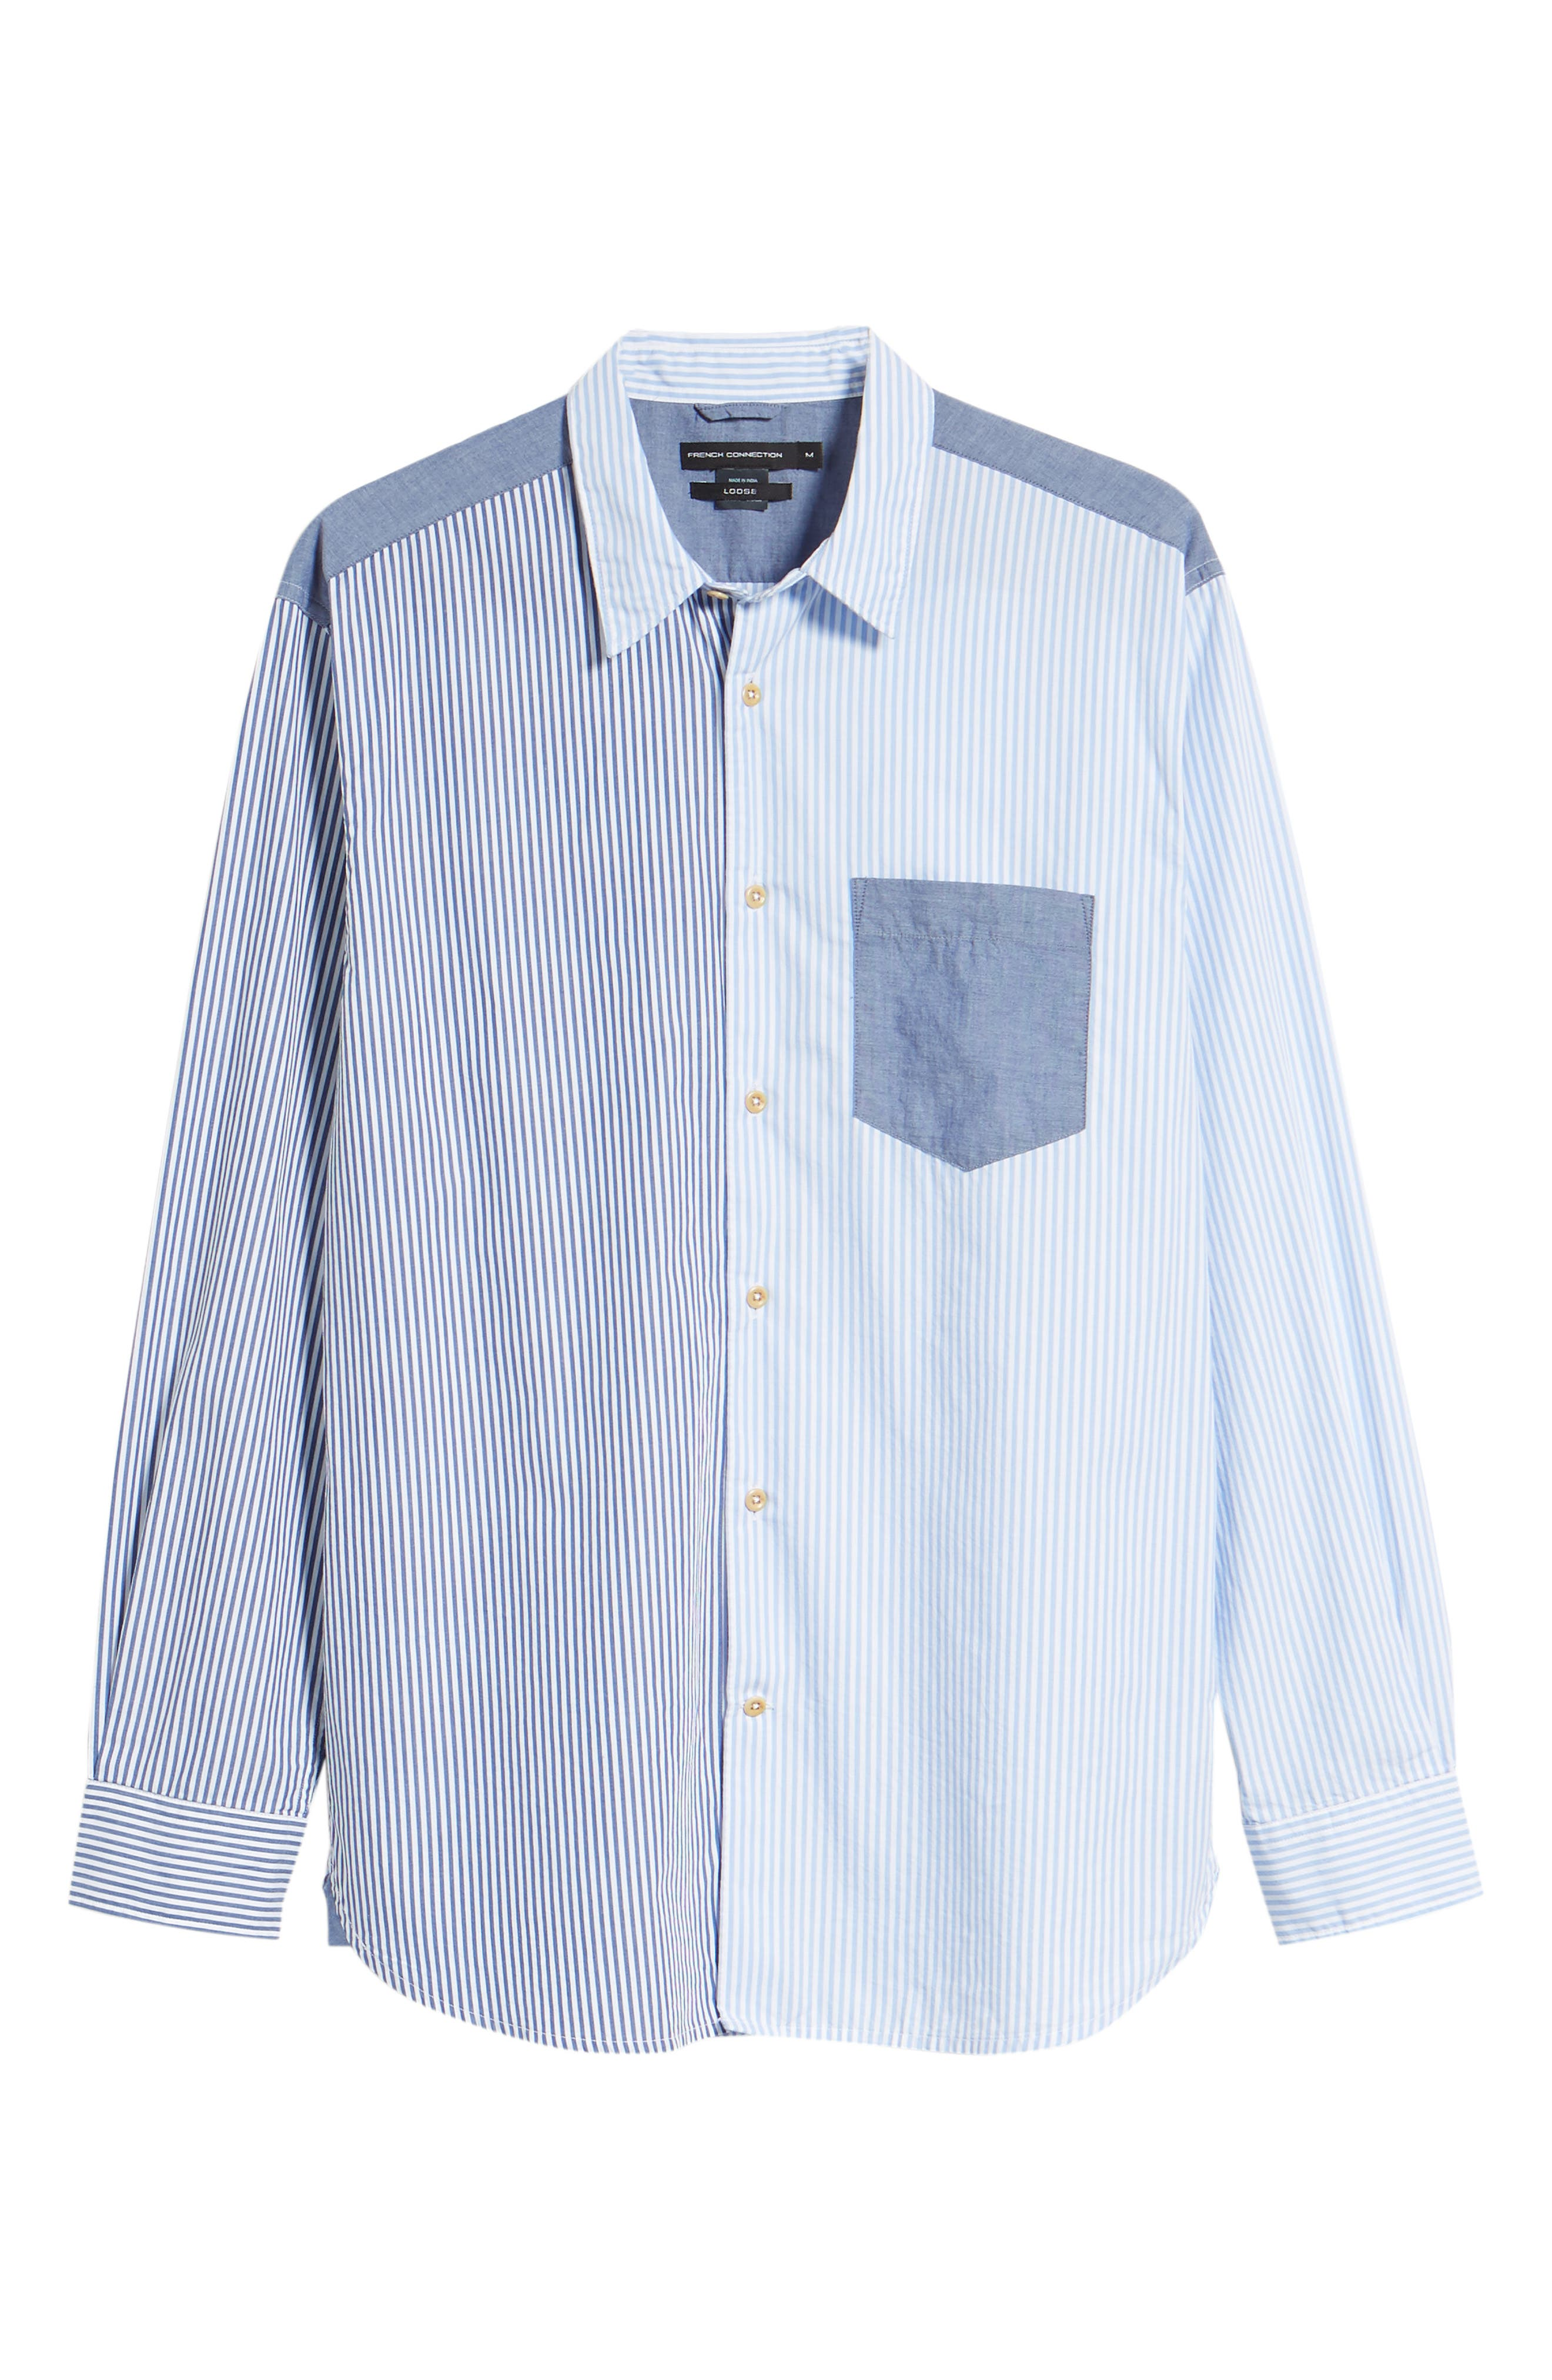 Patchwork Relaxed Fit Sport Shirt,                             Alternate thumbnail 6, color,                             Blue Blood